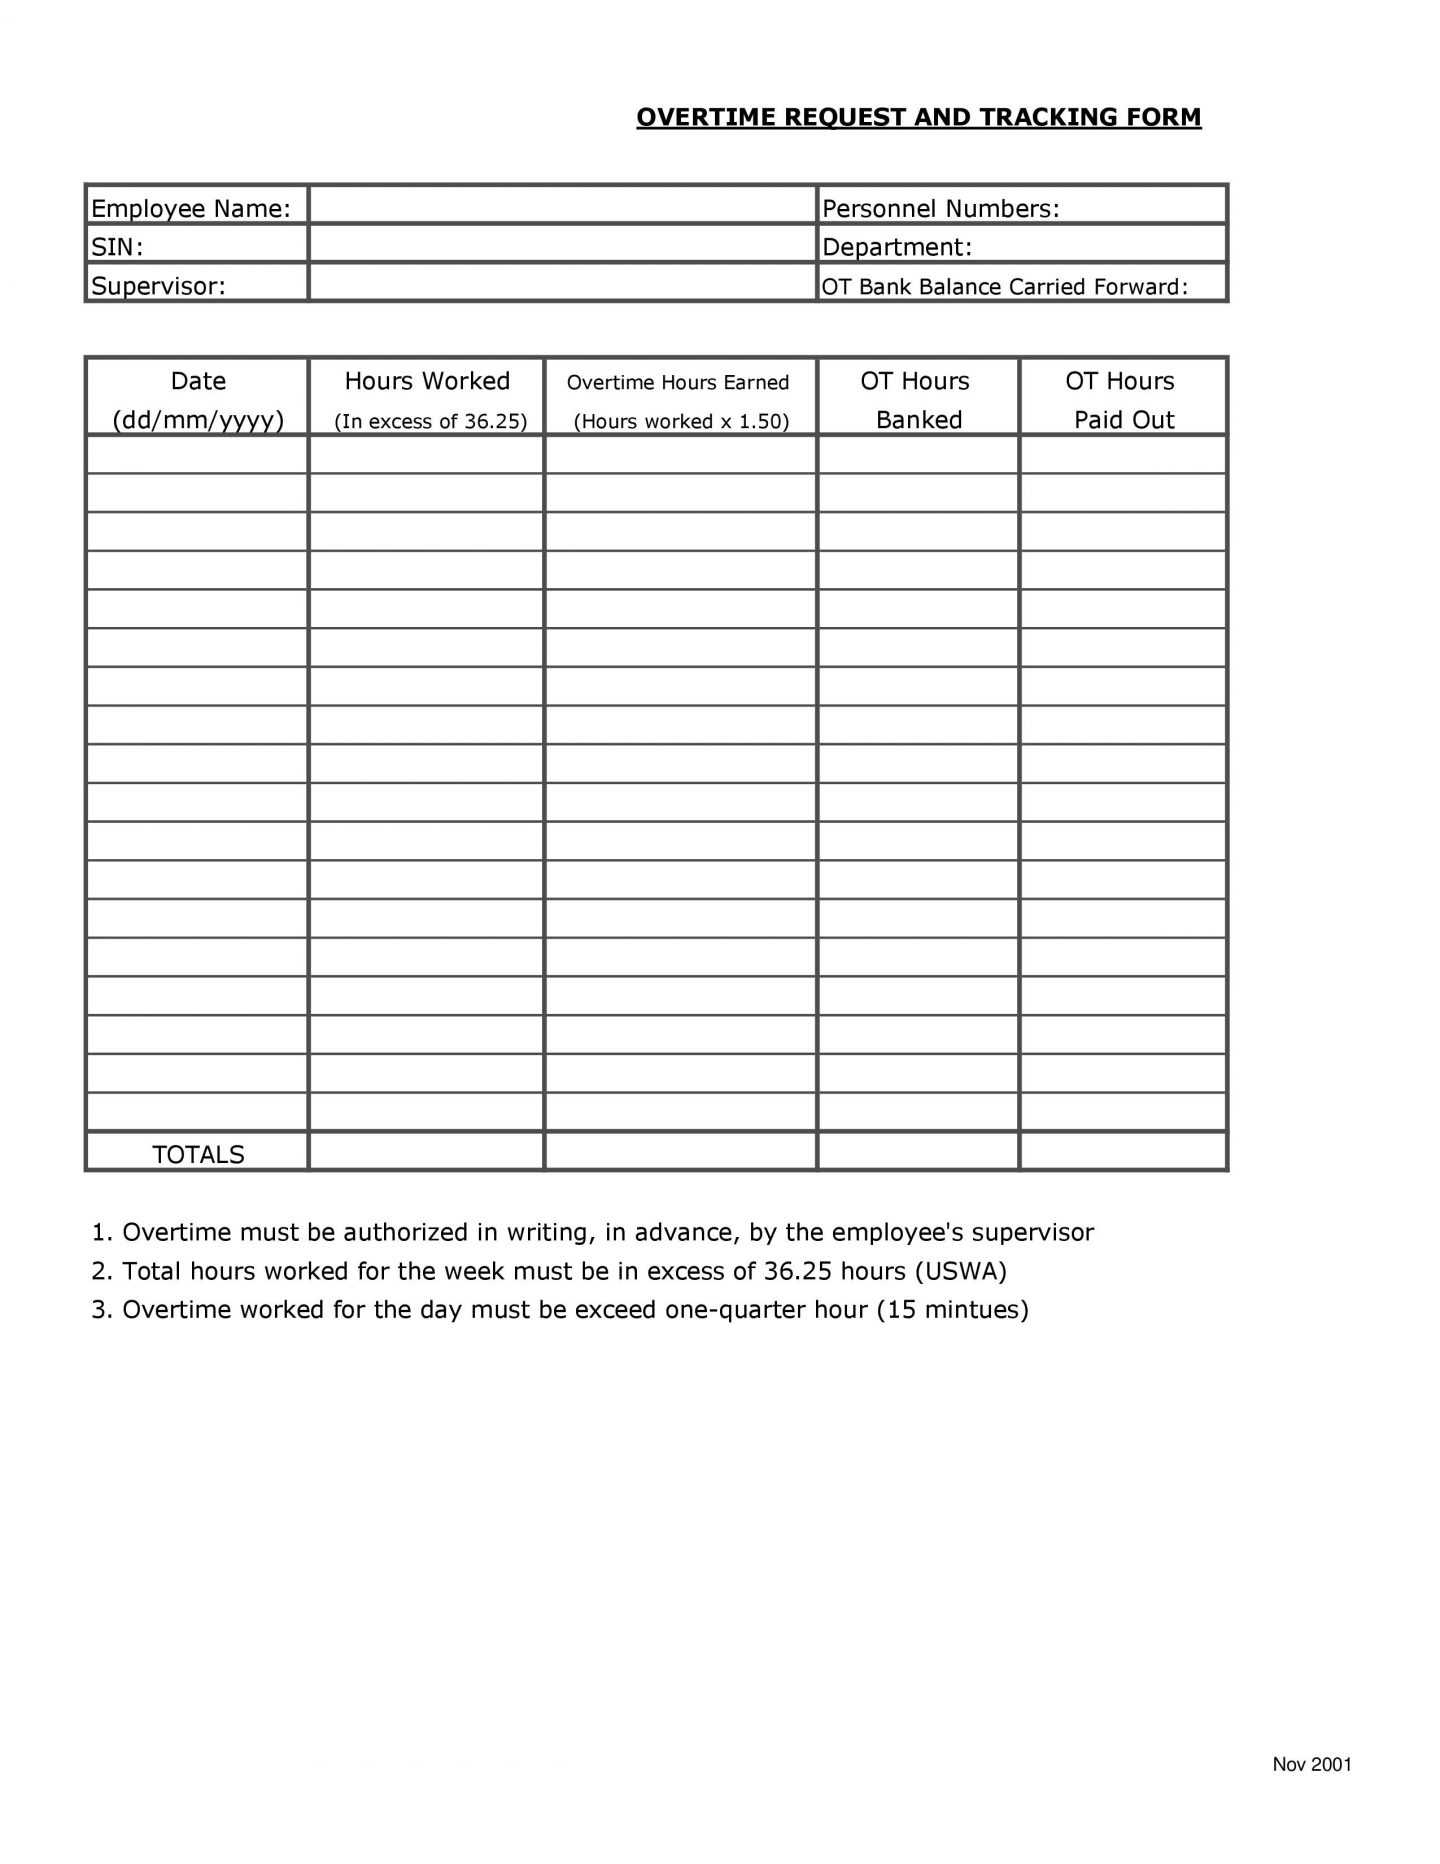 Overtime Spreadsheet With Regard To Track Your Spending Spreadsheet Also Employee Overtime Tracking